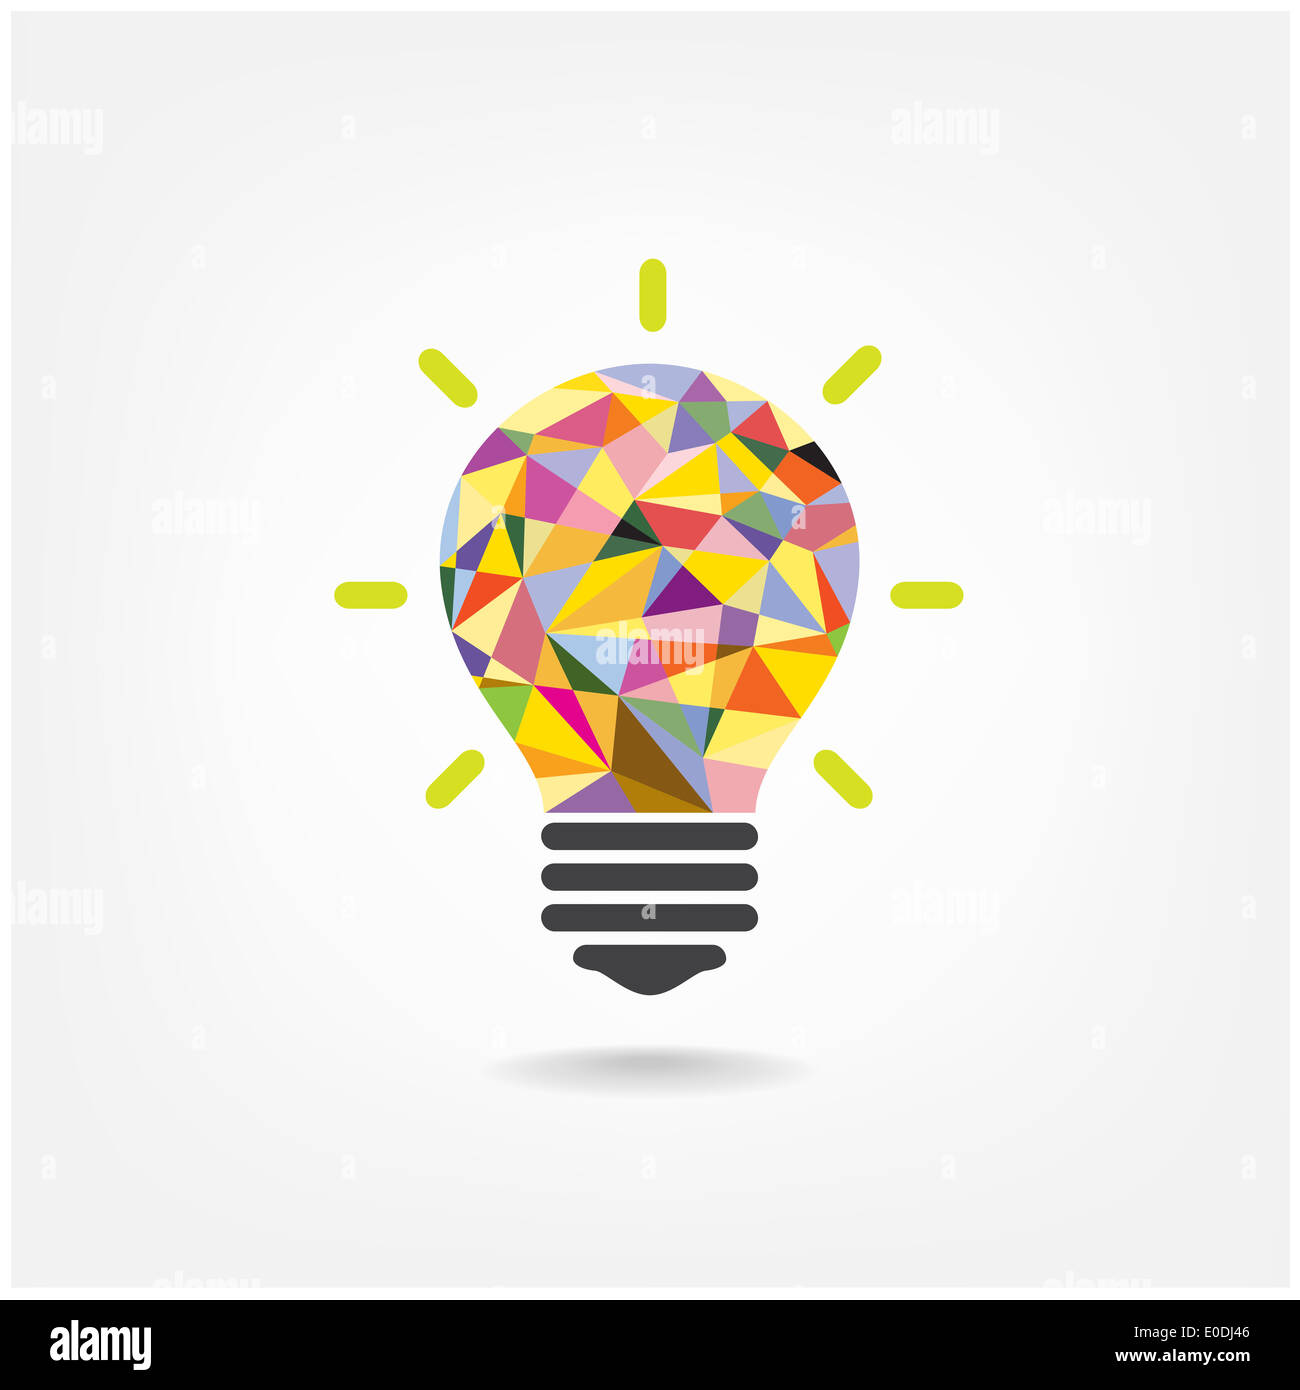 Free Energy Light Bulb Diagram Automotive Wiring Circuit Of Creative Idea Concept Background Design For How To Make Bulbs By Mail